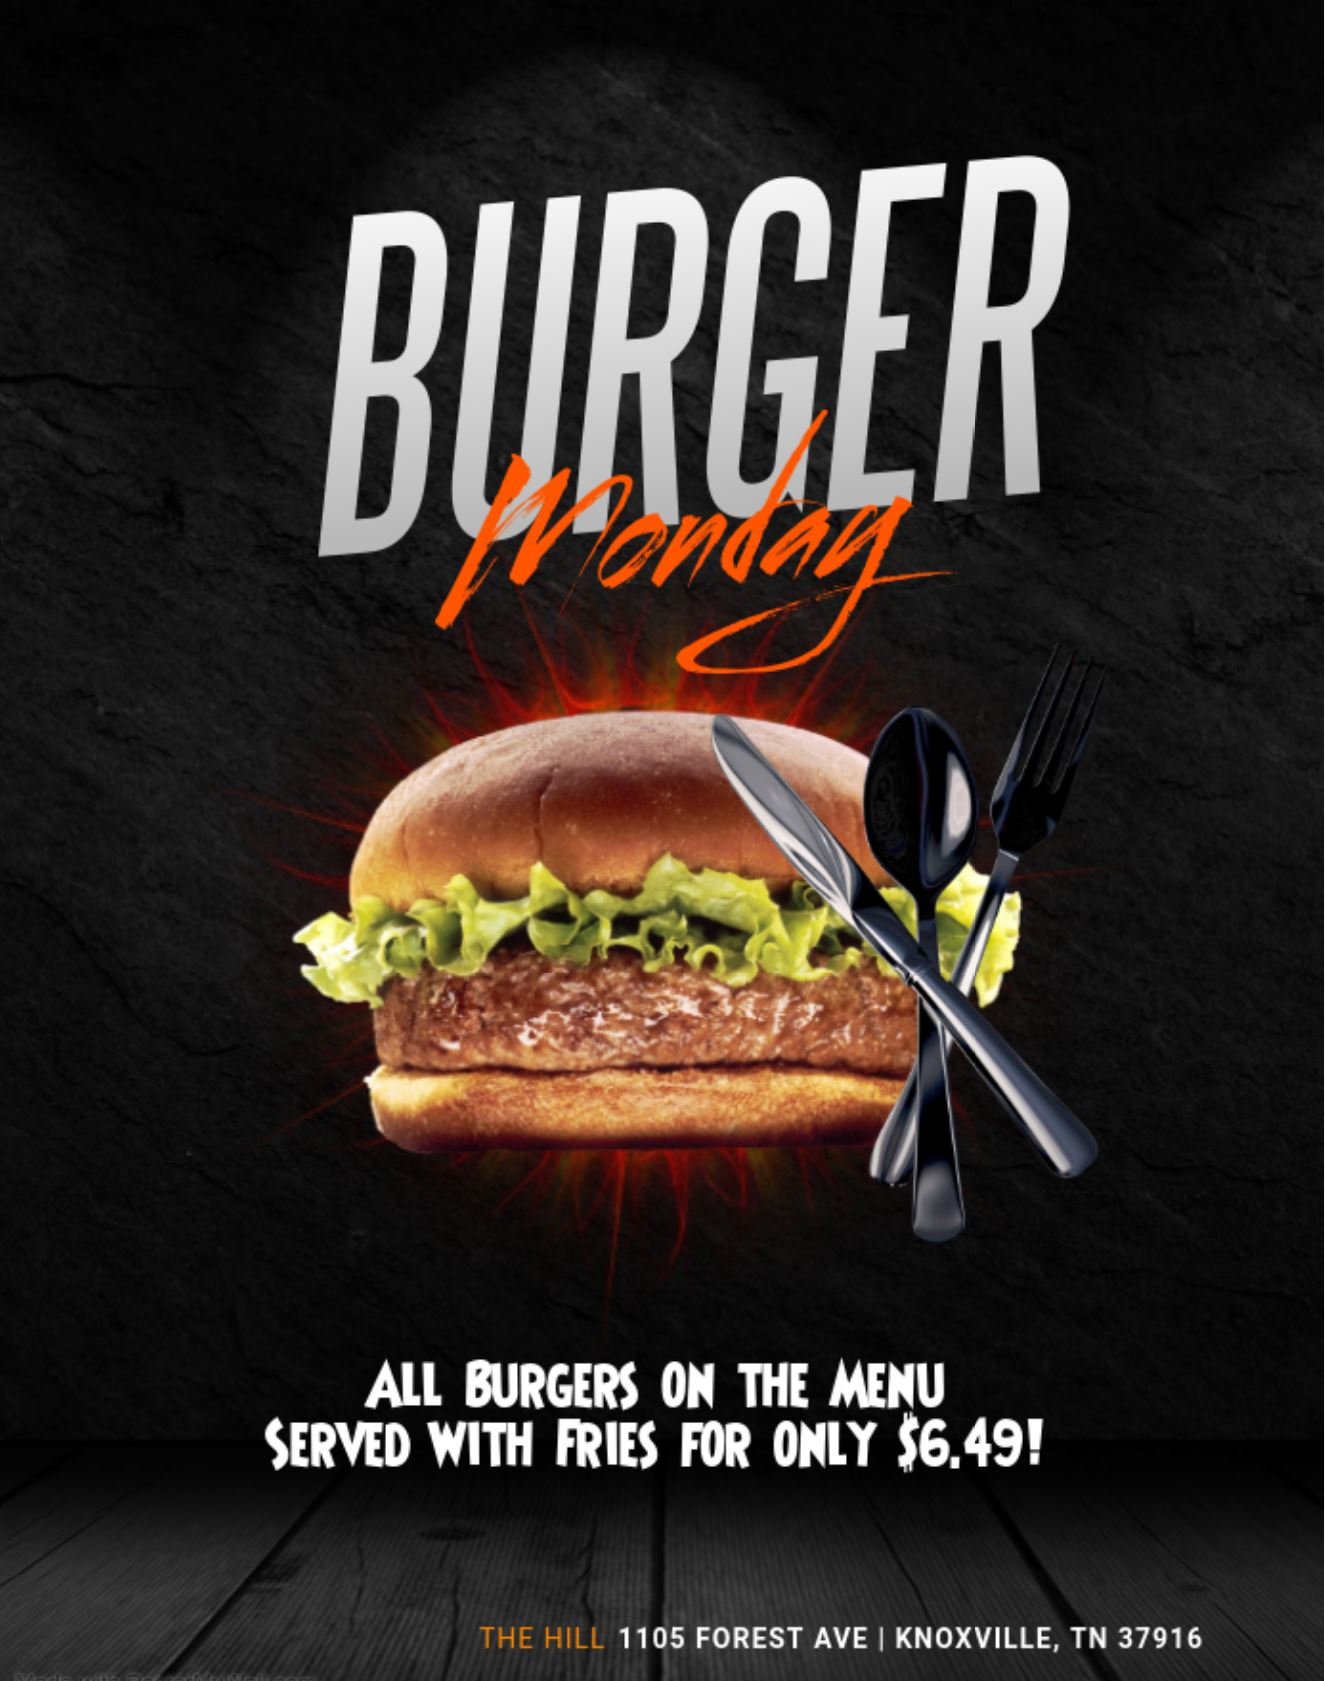 Weekly Special Monday Burger